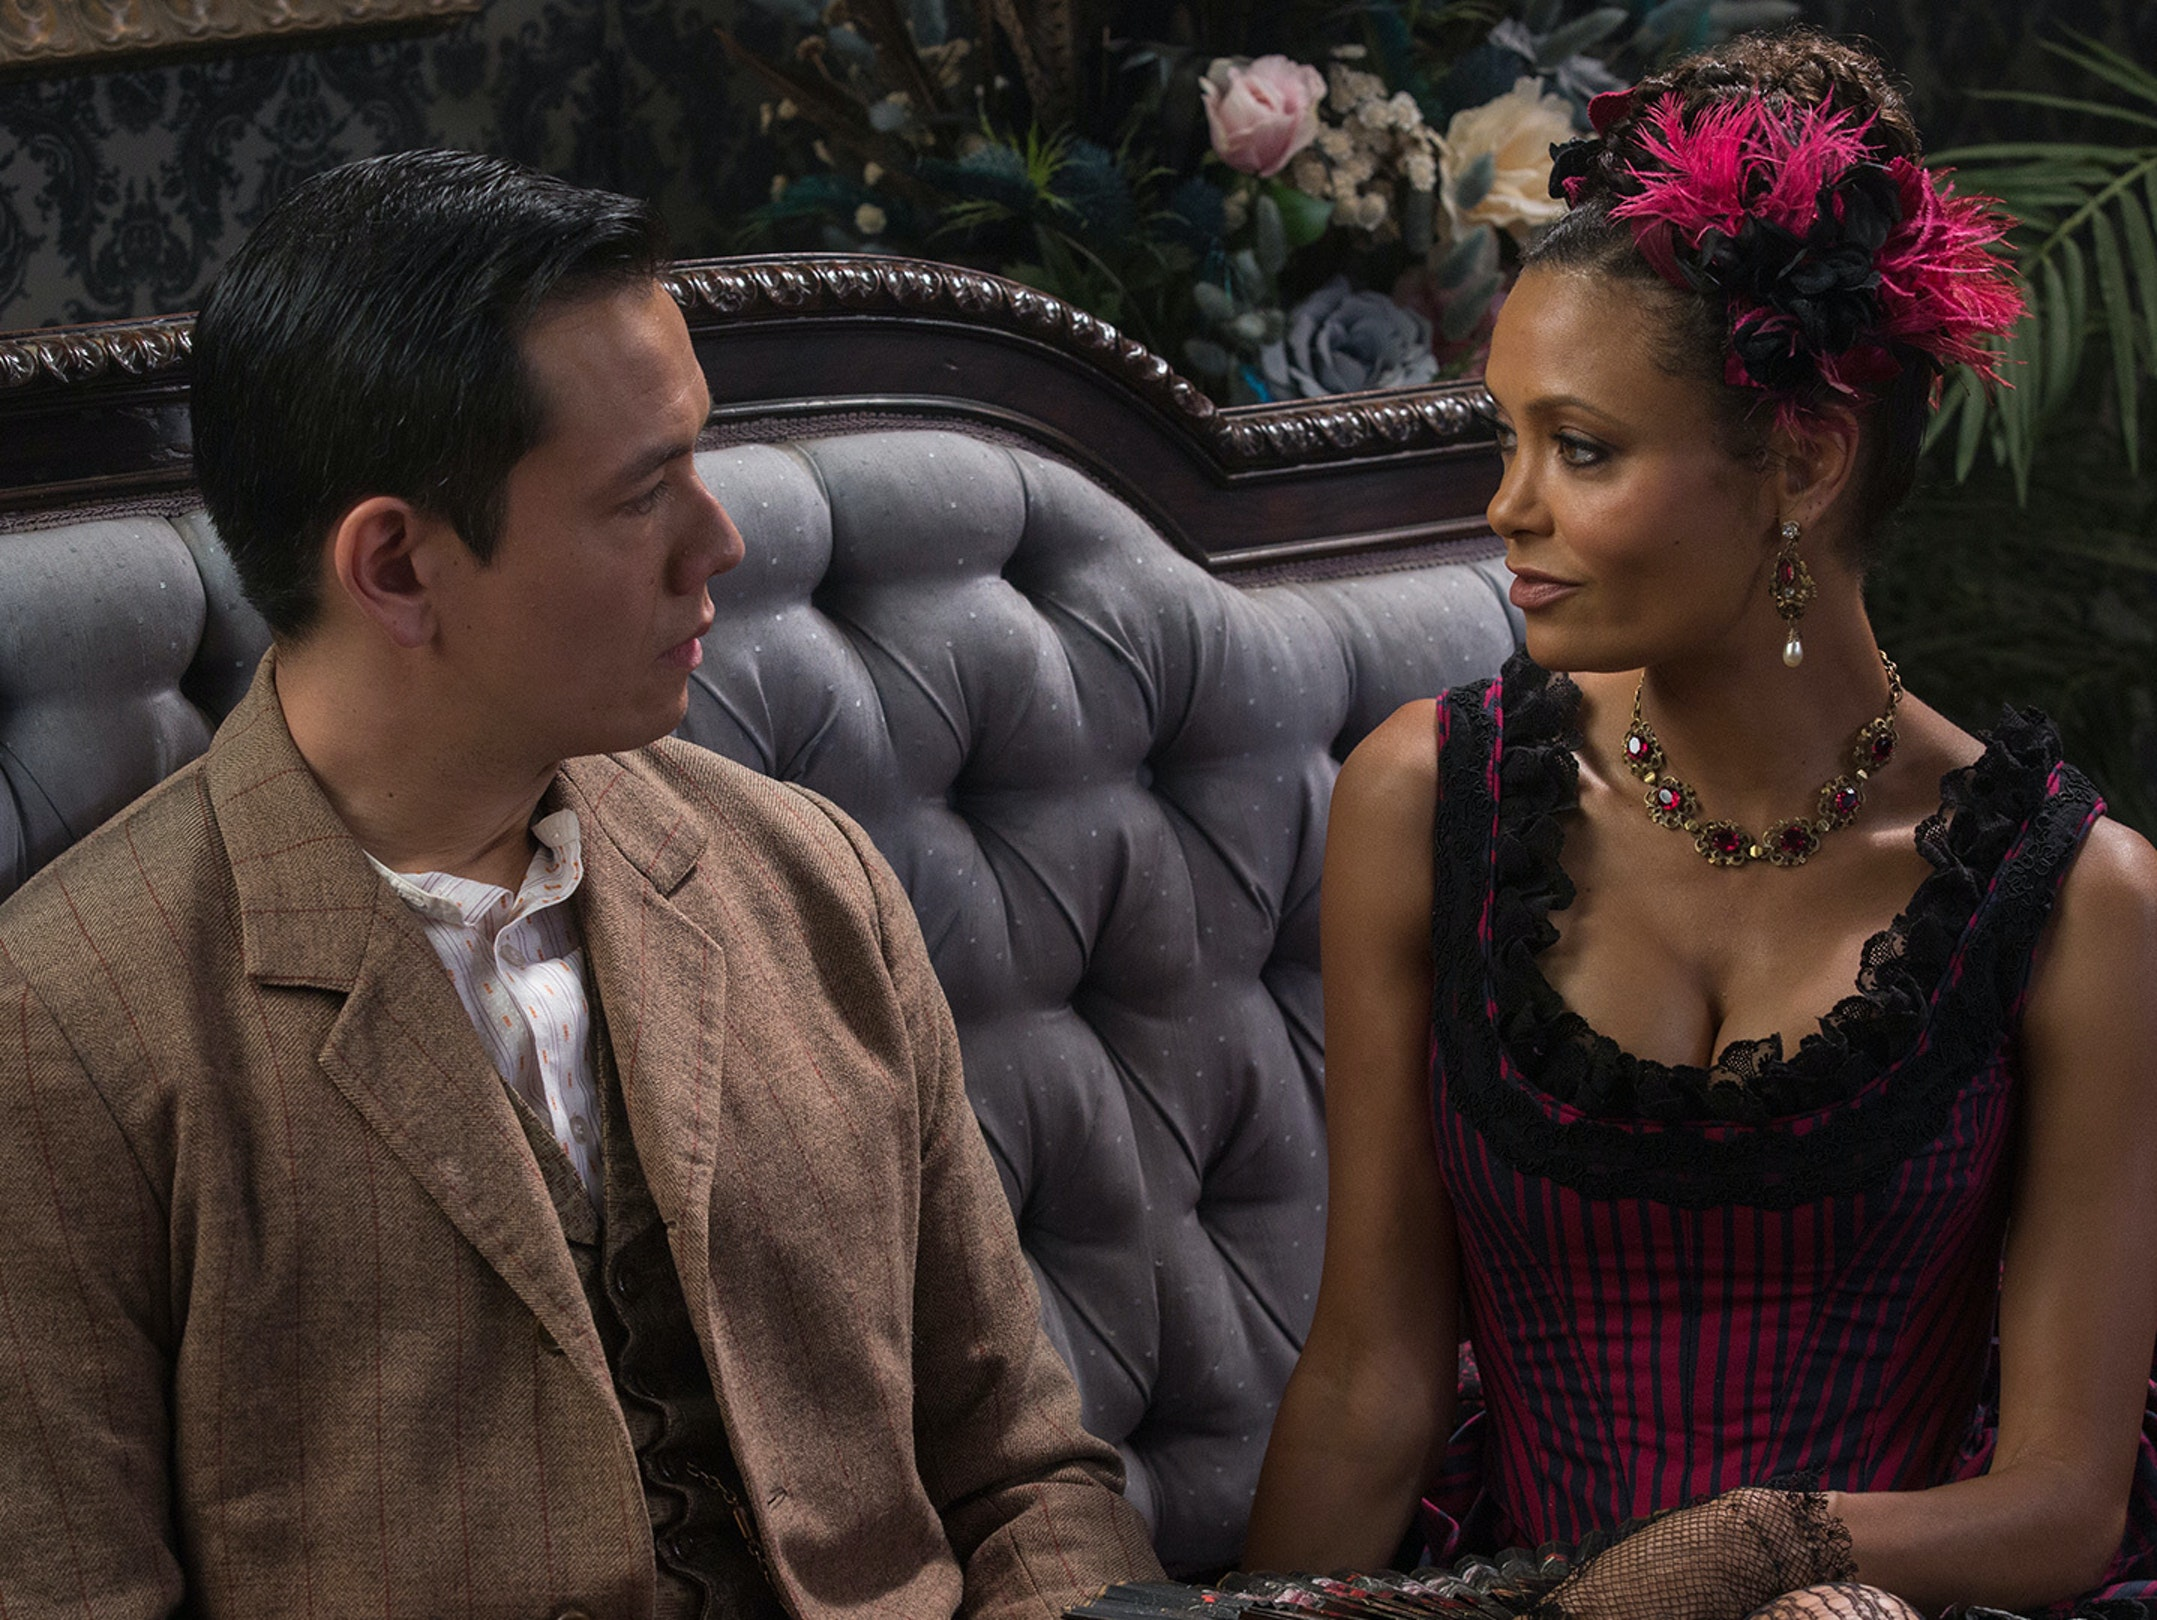 Thandie Newton as Maeve in HBO's 'Westworld'